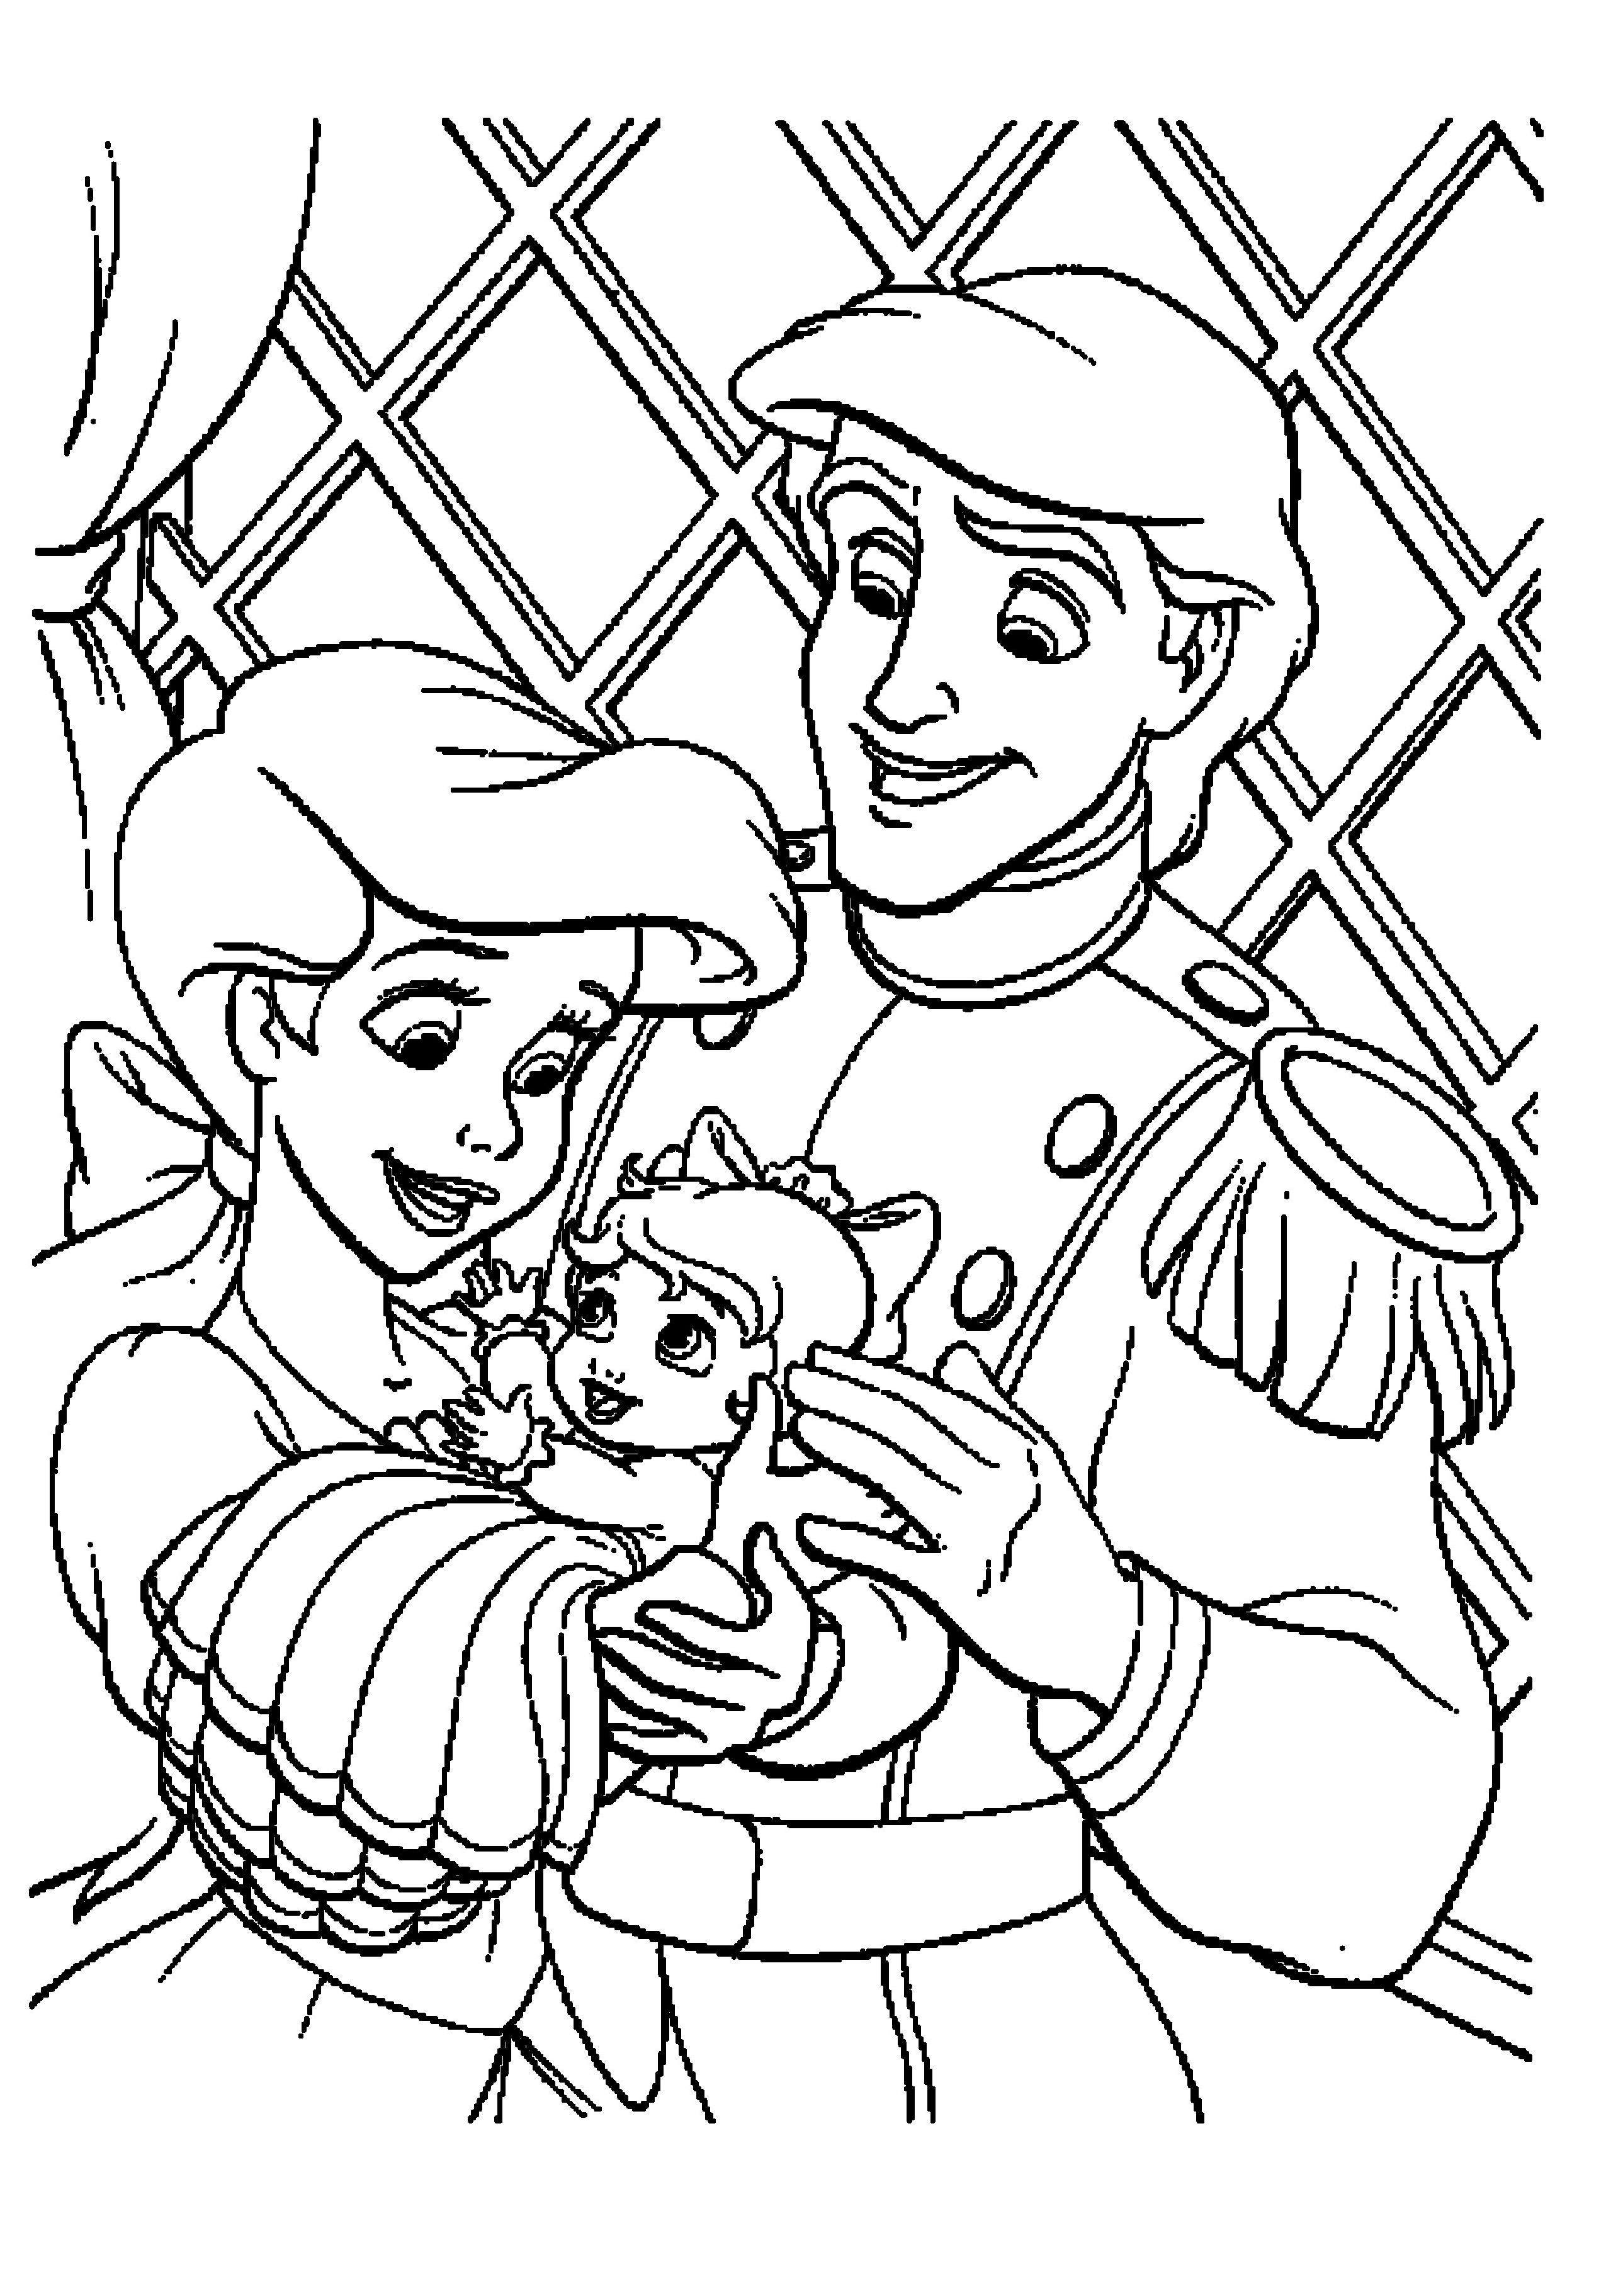 Ariel Little Mermaid Coloring Pages Family Prince And Kids Jpg Jpeg Image 2551 3647 Pix Ariel Coloring Pages Princess Coloring Pages Mermaid Coloring Pages